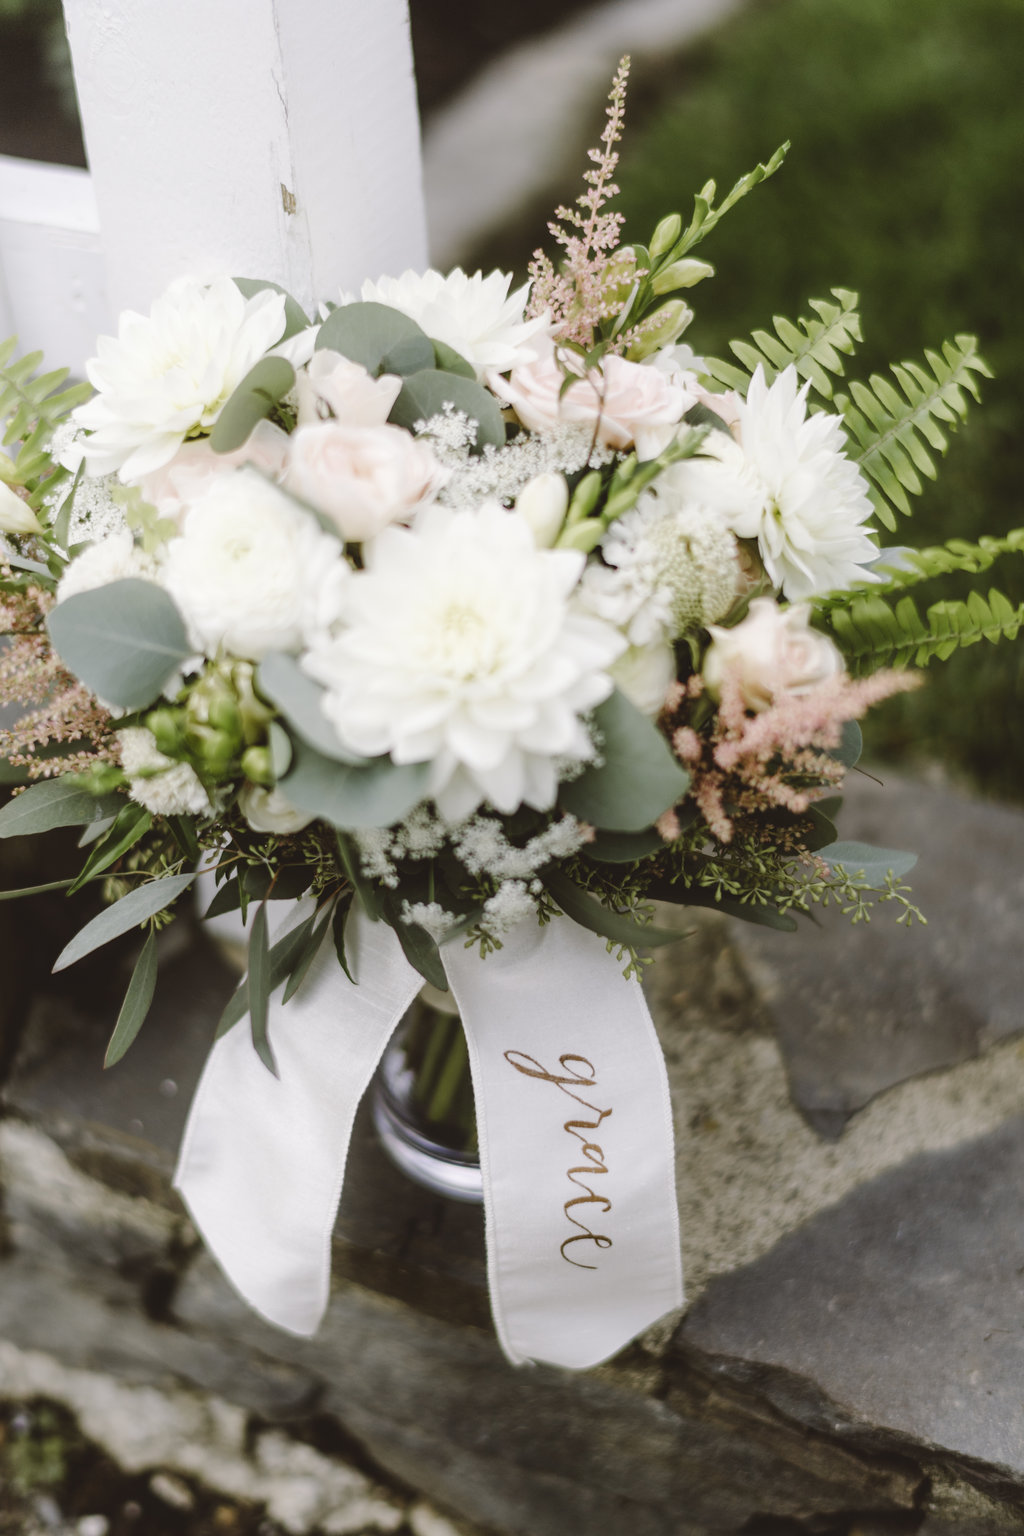 Coppola Creative Wedding Design _ Alicia King Photo6.jpg